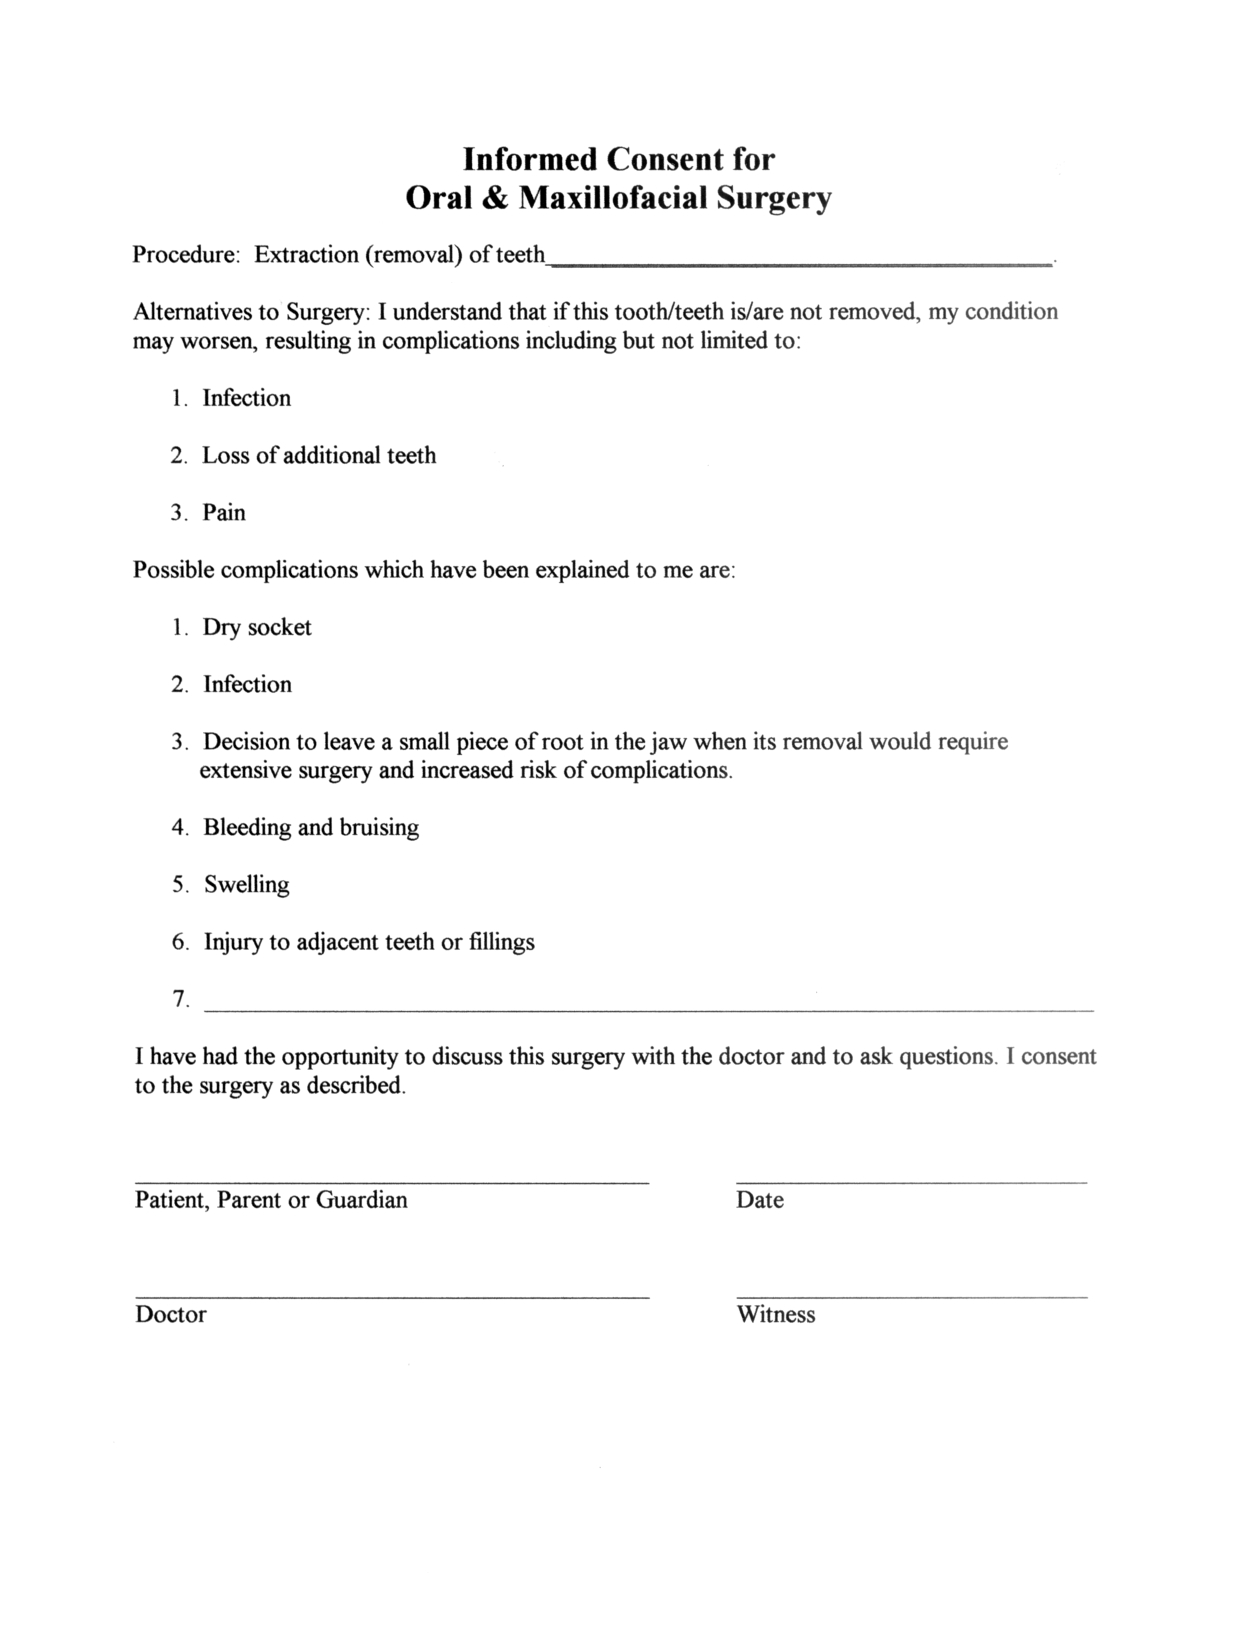 medical consent letter template Collection-Surgery Informed Consent Form Template 10-r